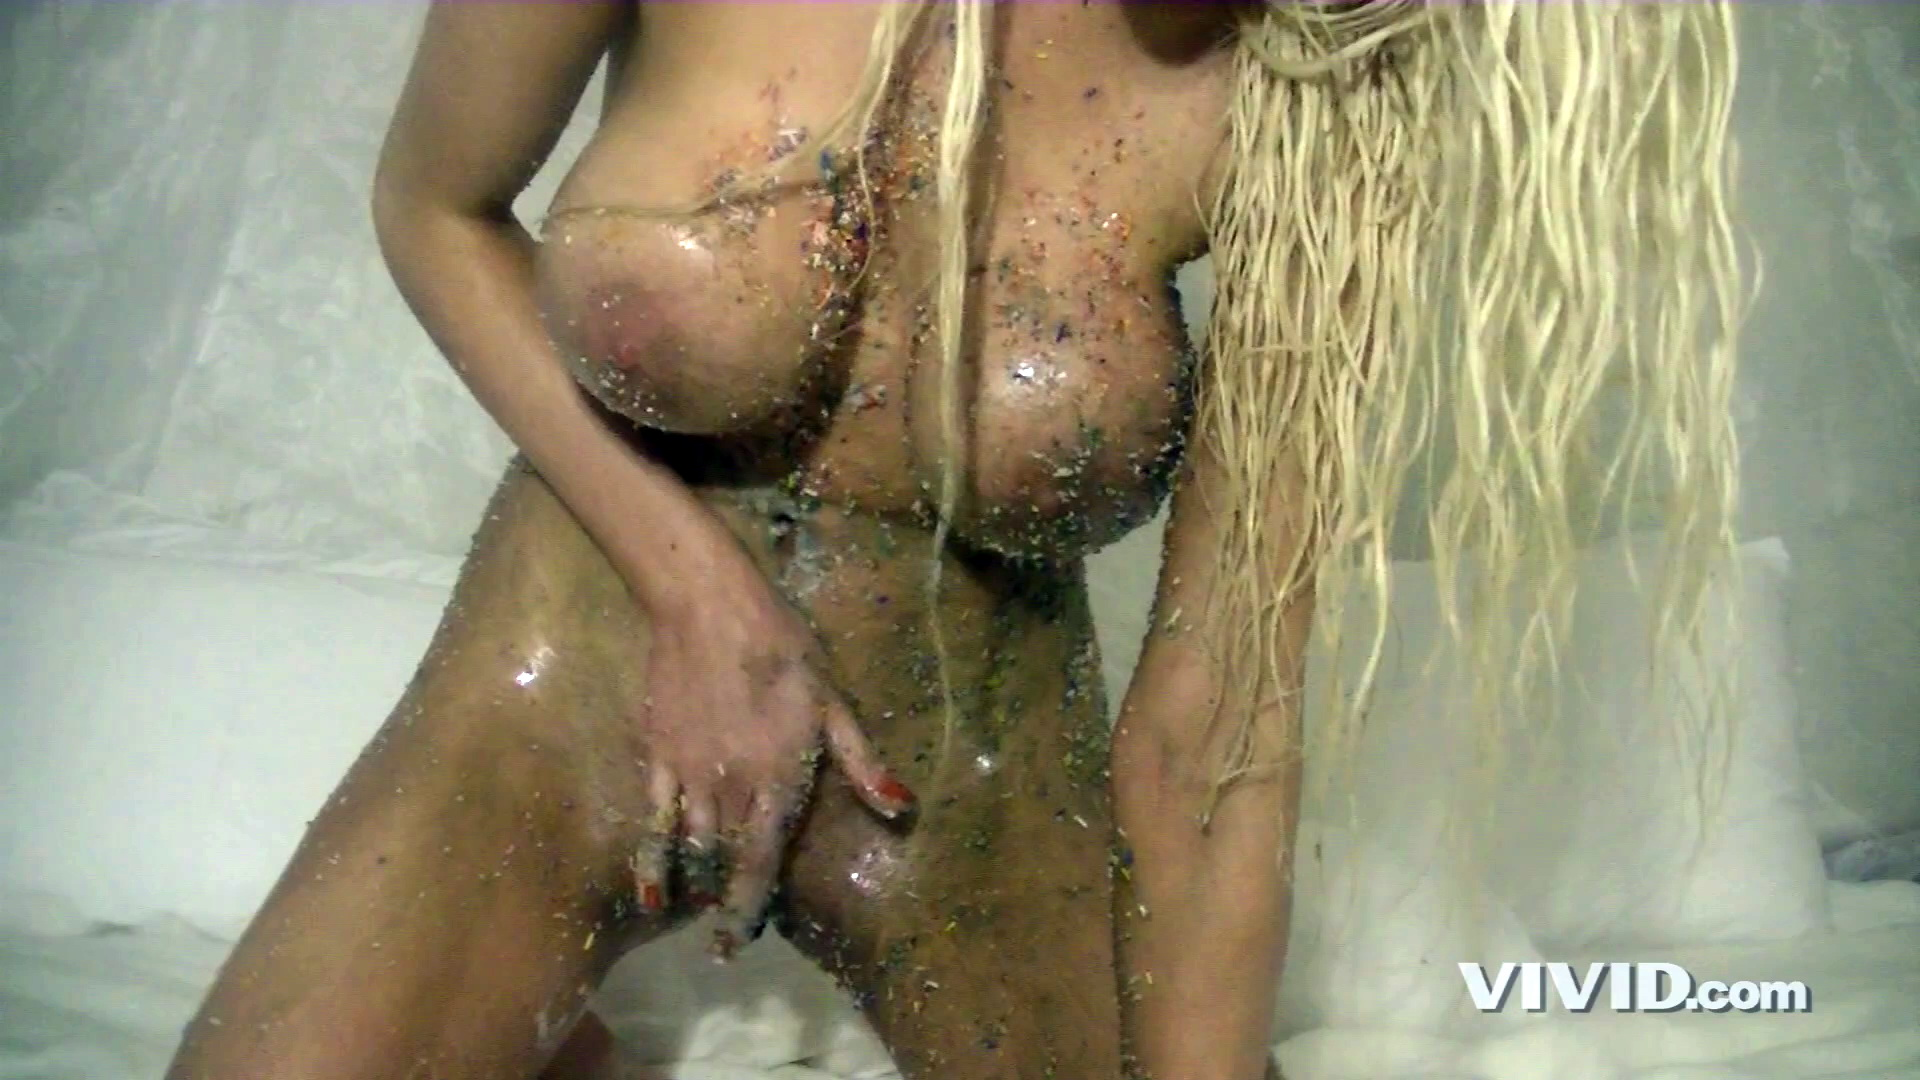 Stodden courtney nude pussy exclusively your